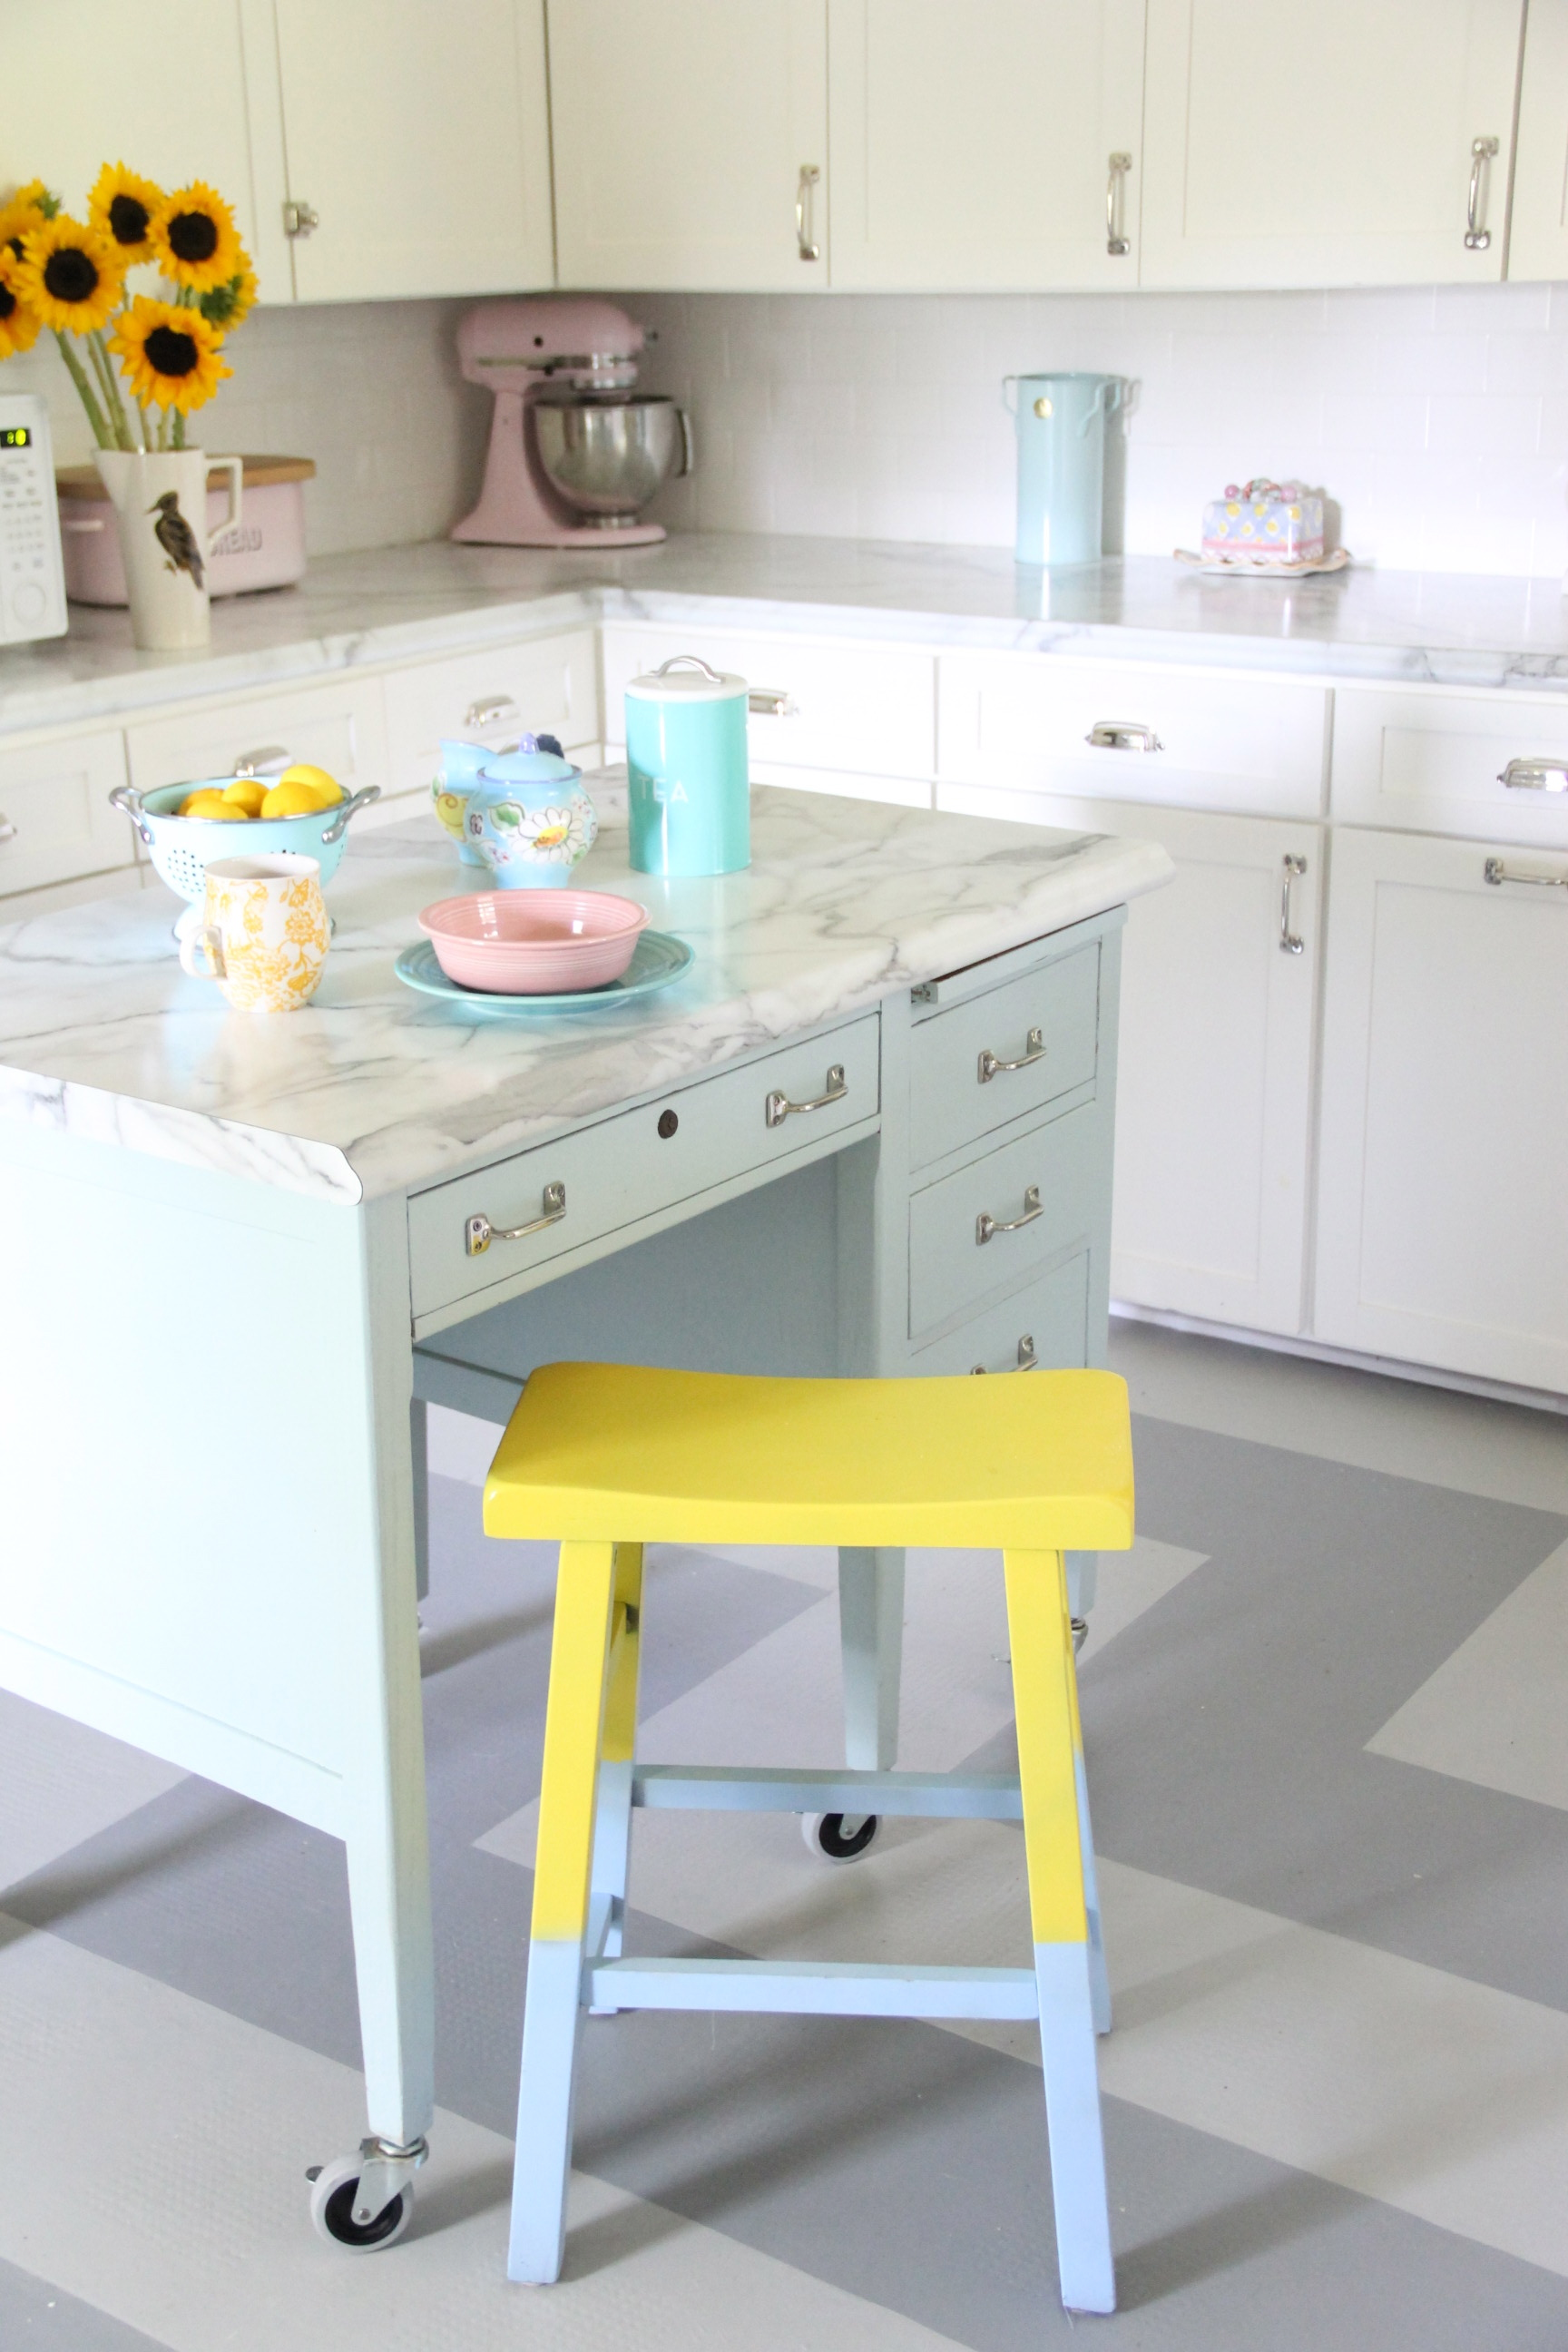 NEW INDUSTRIAL PAINTED KITCHEN ISLAND –